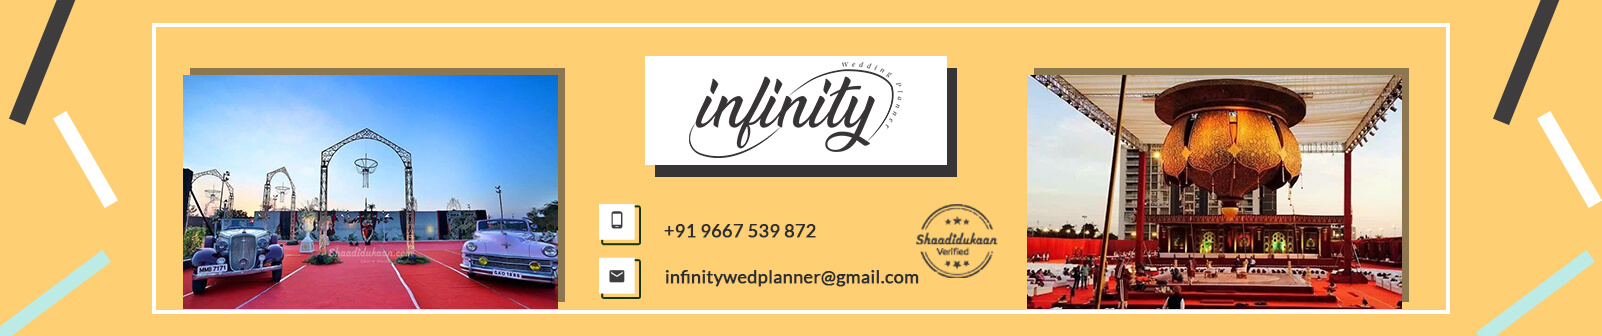 Infinity Wed Planner